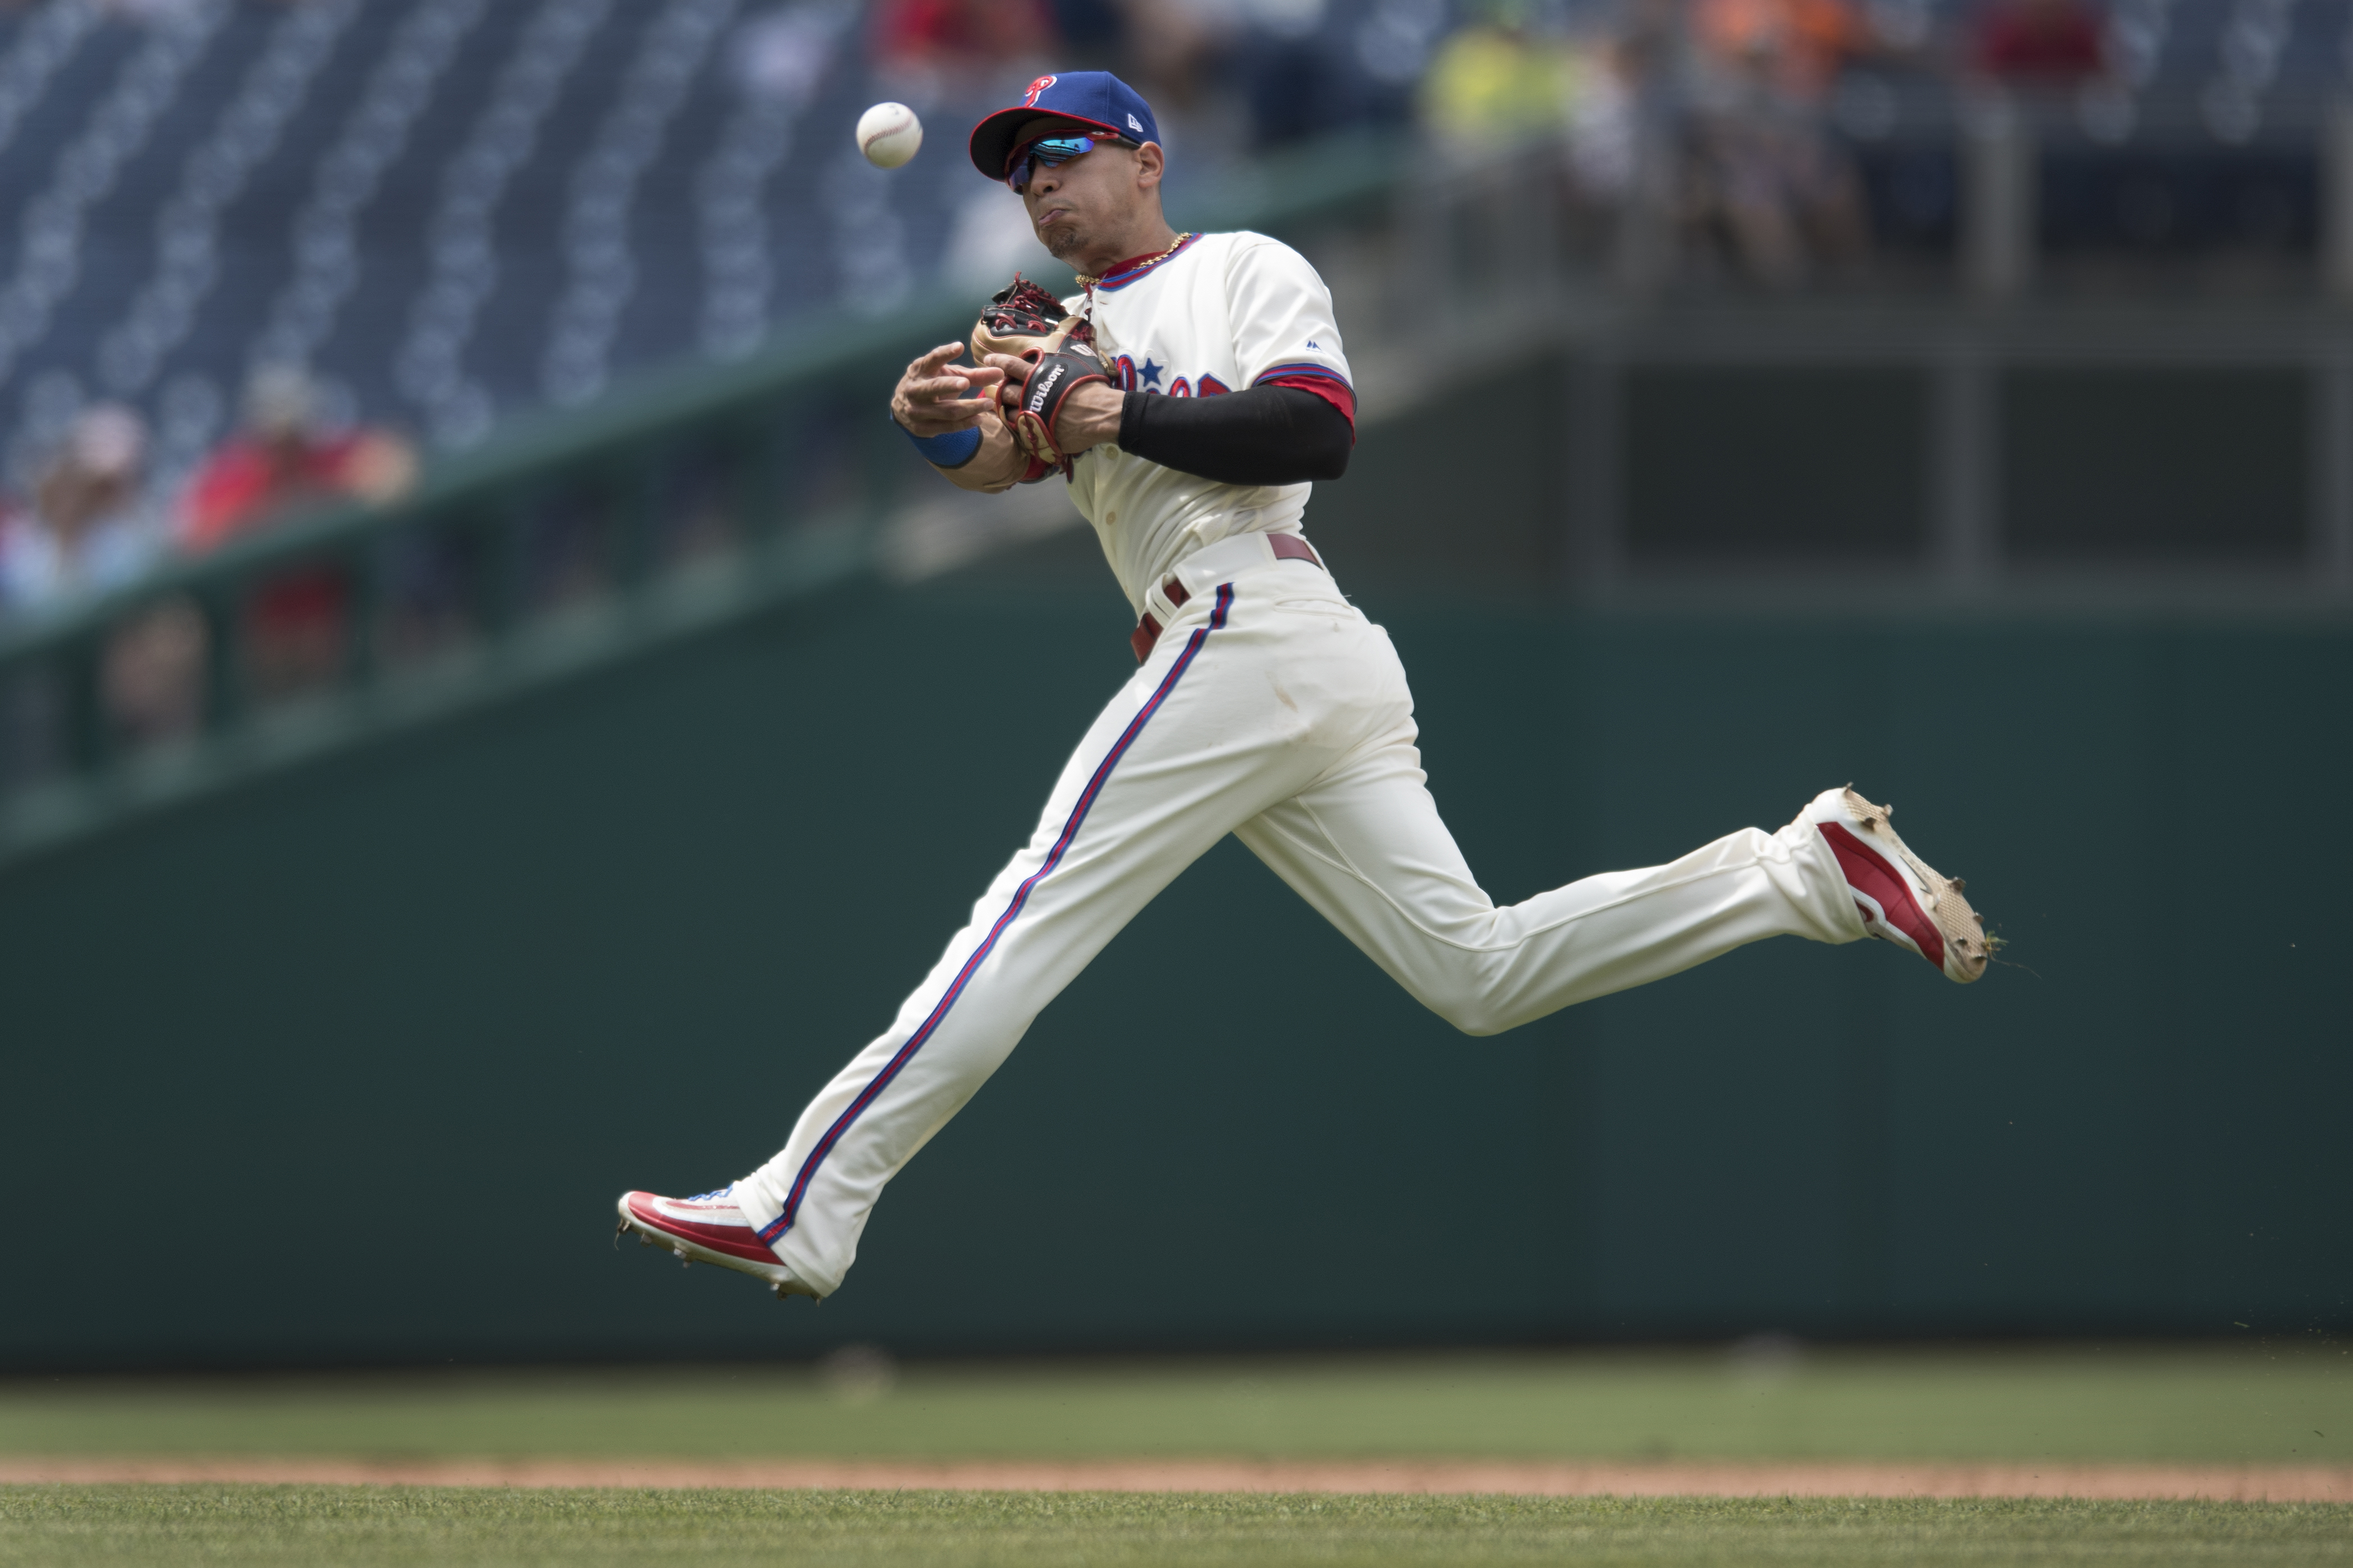 Second baseman Cesar Hernandez makes a great play in the sixth inning of the Phillies win over St. Louis Wednesday.